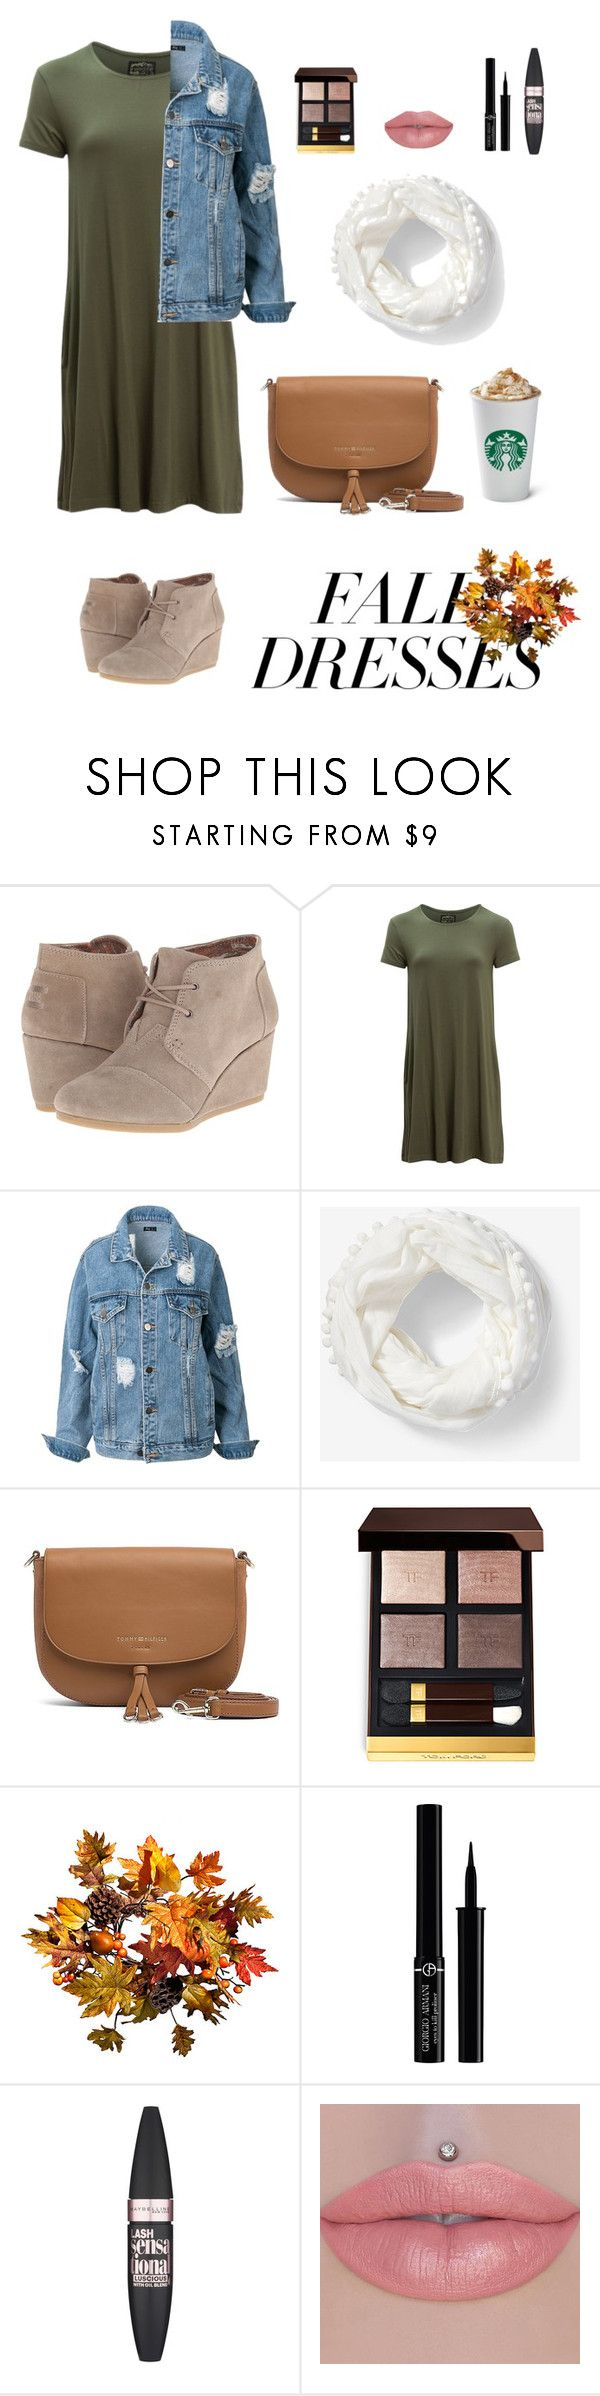 """Fall Dresses"" by miriamk2020 ❤ liked on Polyvore featuring TOMS, United by Blue, Express, Tommy Hilfiger, Tom Ford, Improvements, Giorgio Armani and Maybelline"